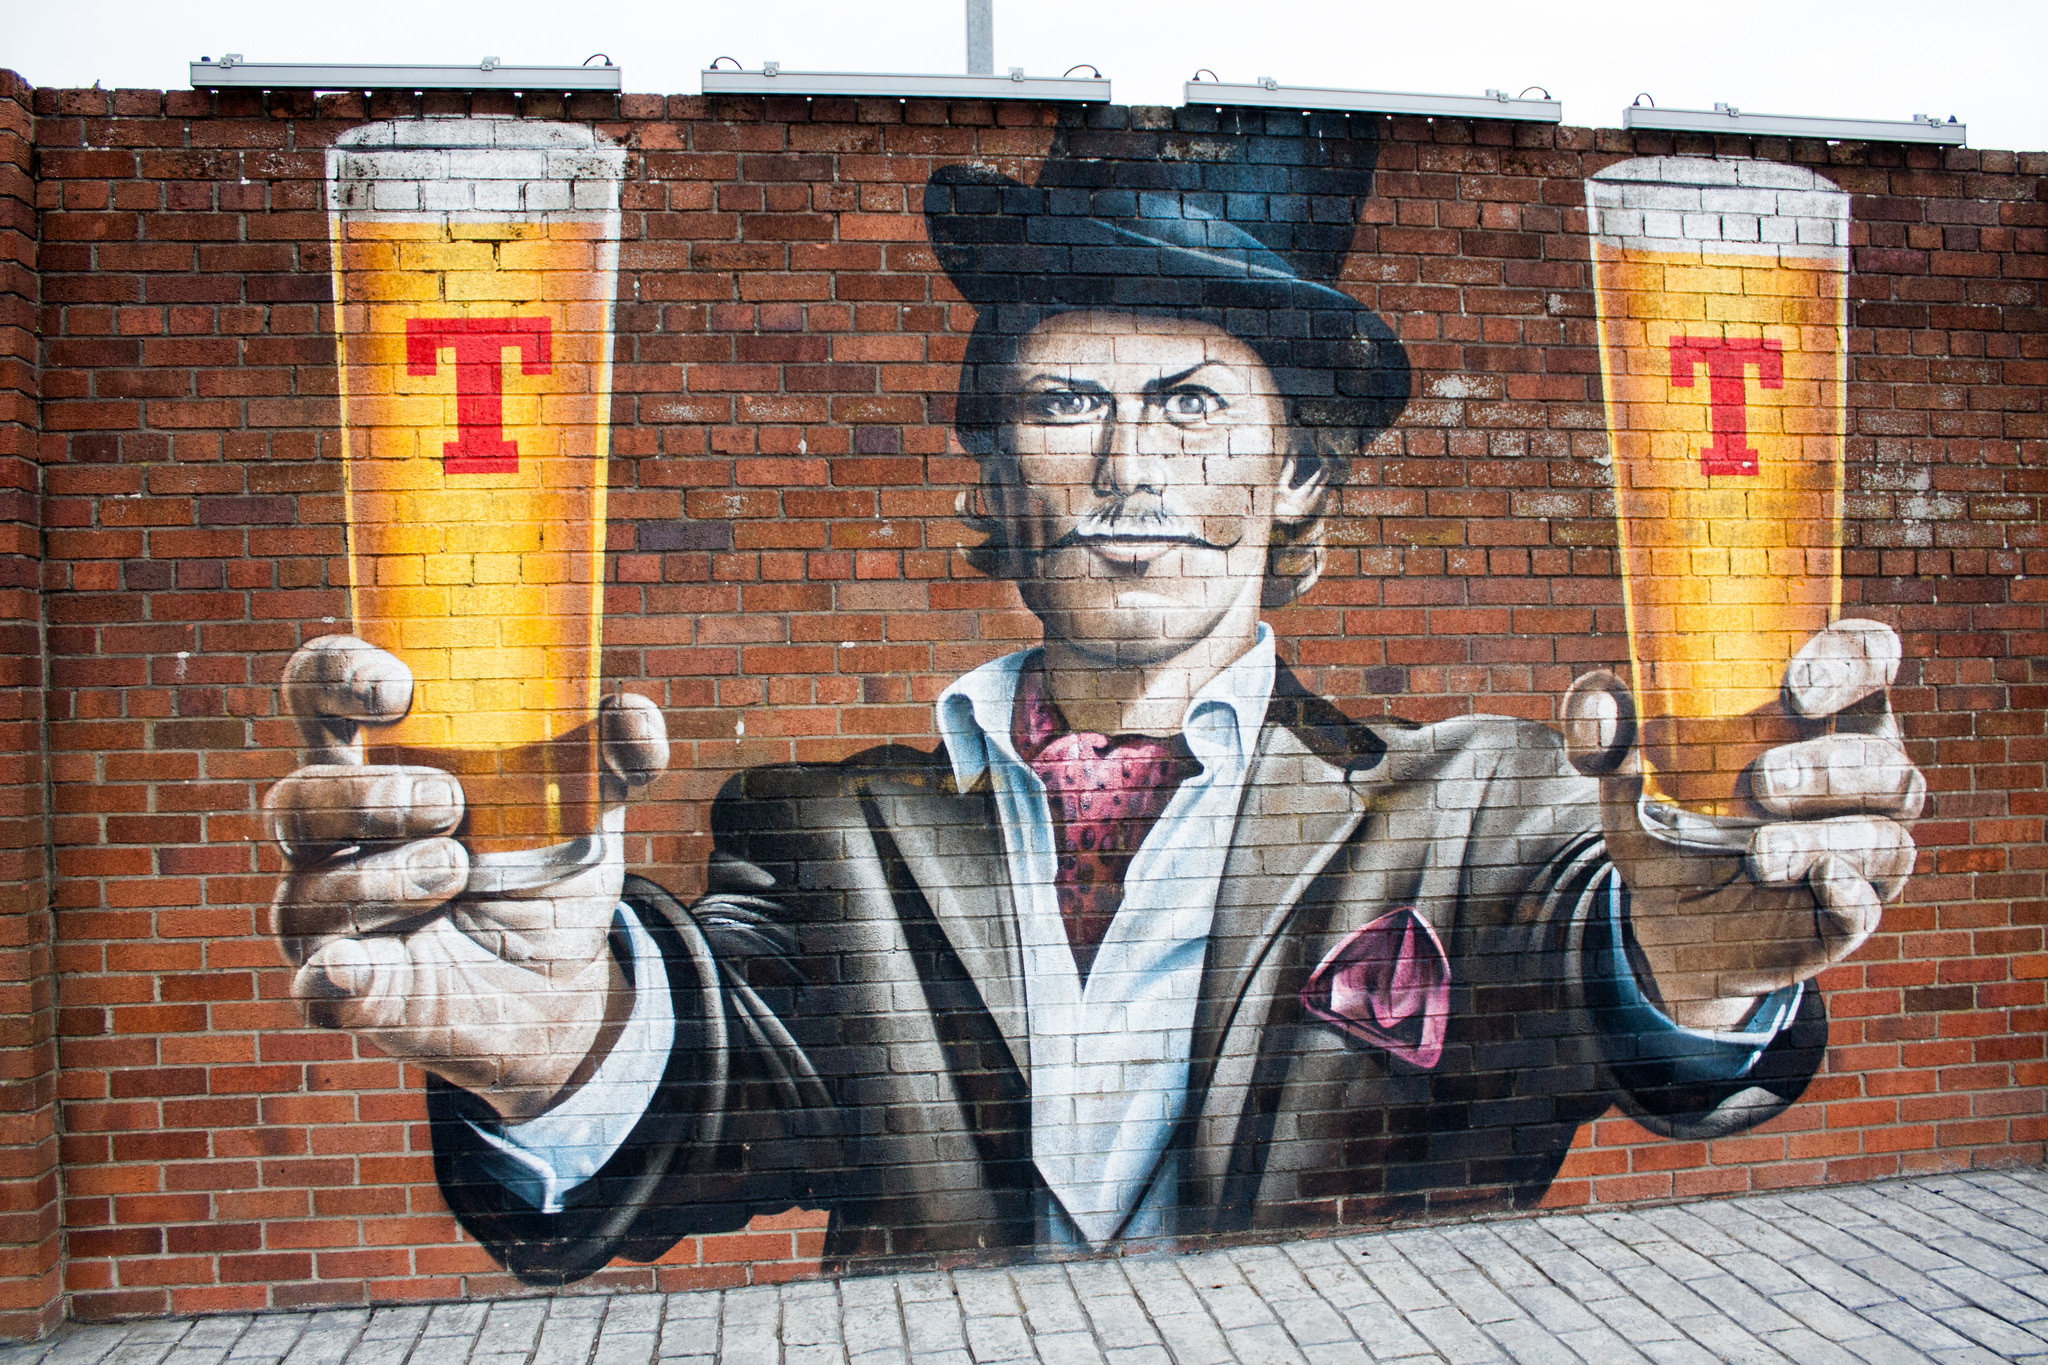 All I'm saying is, give Tennent's a chance: